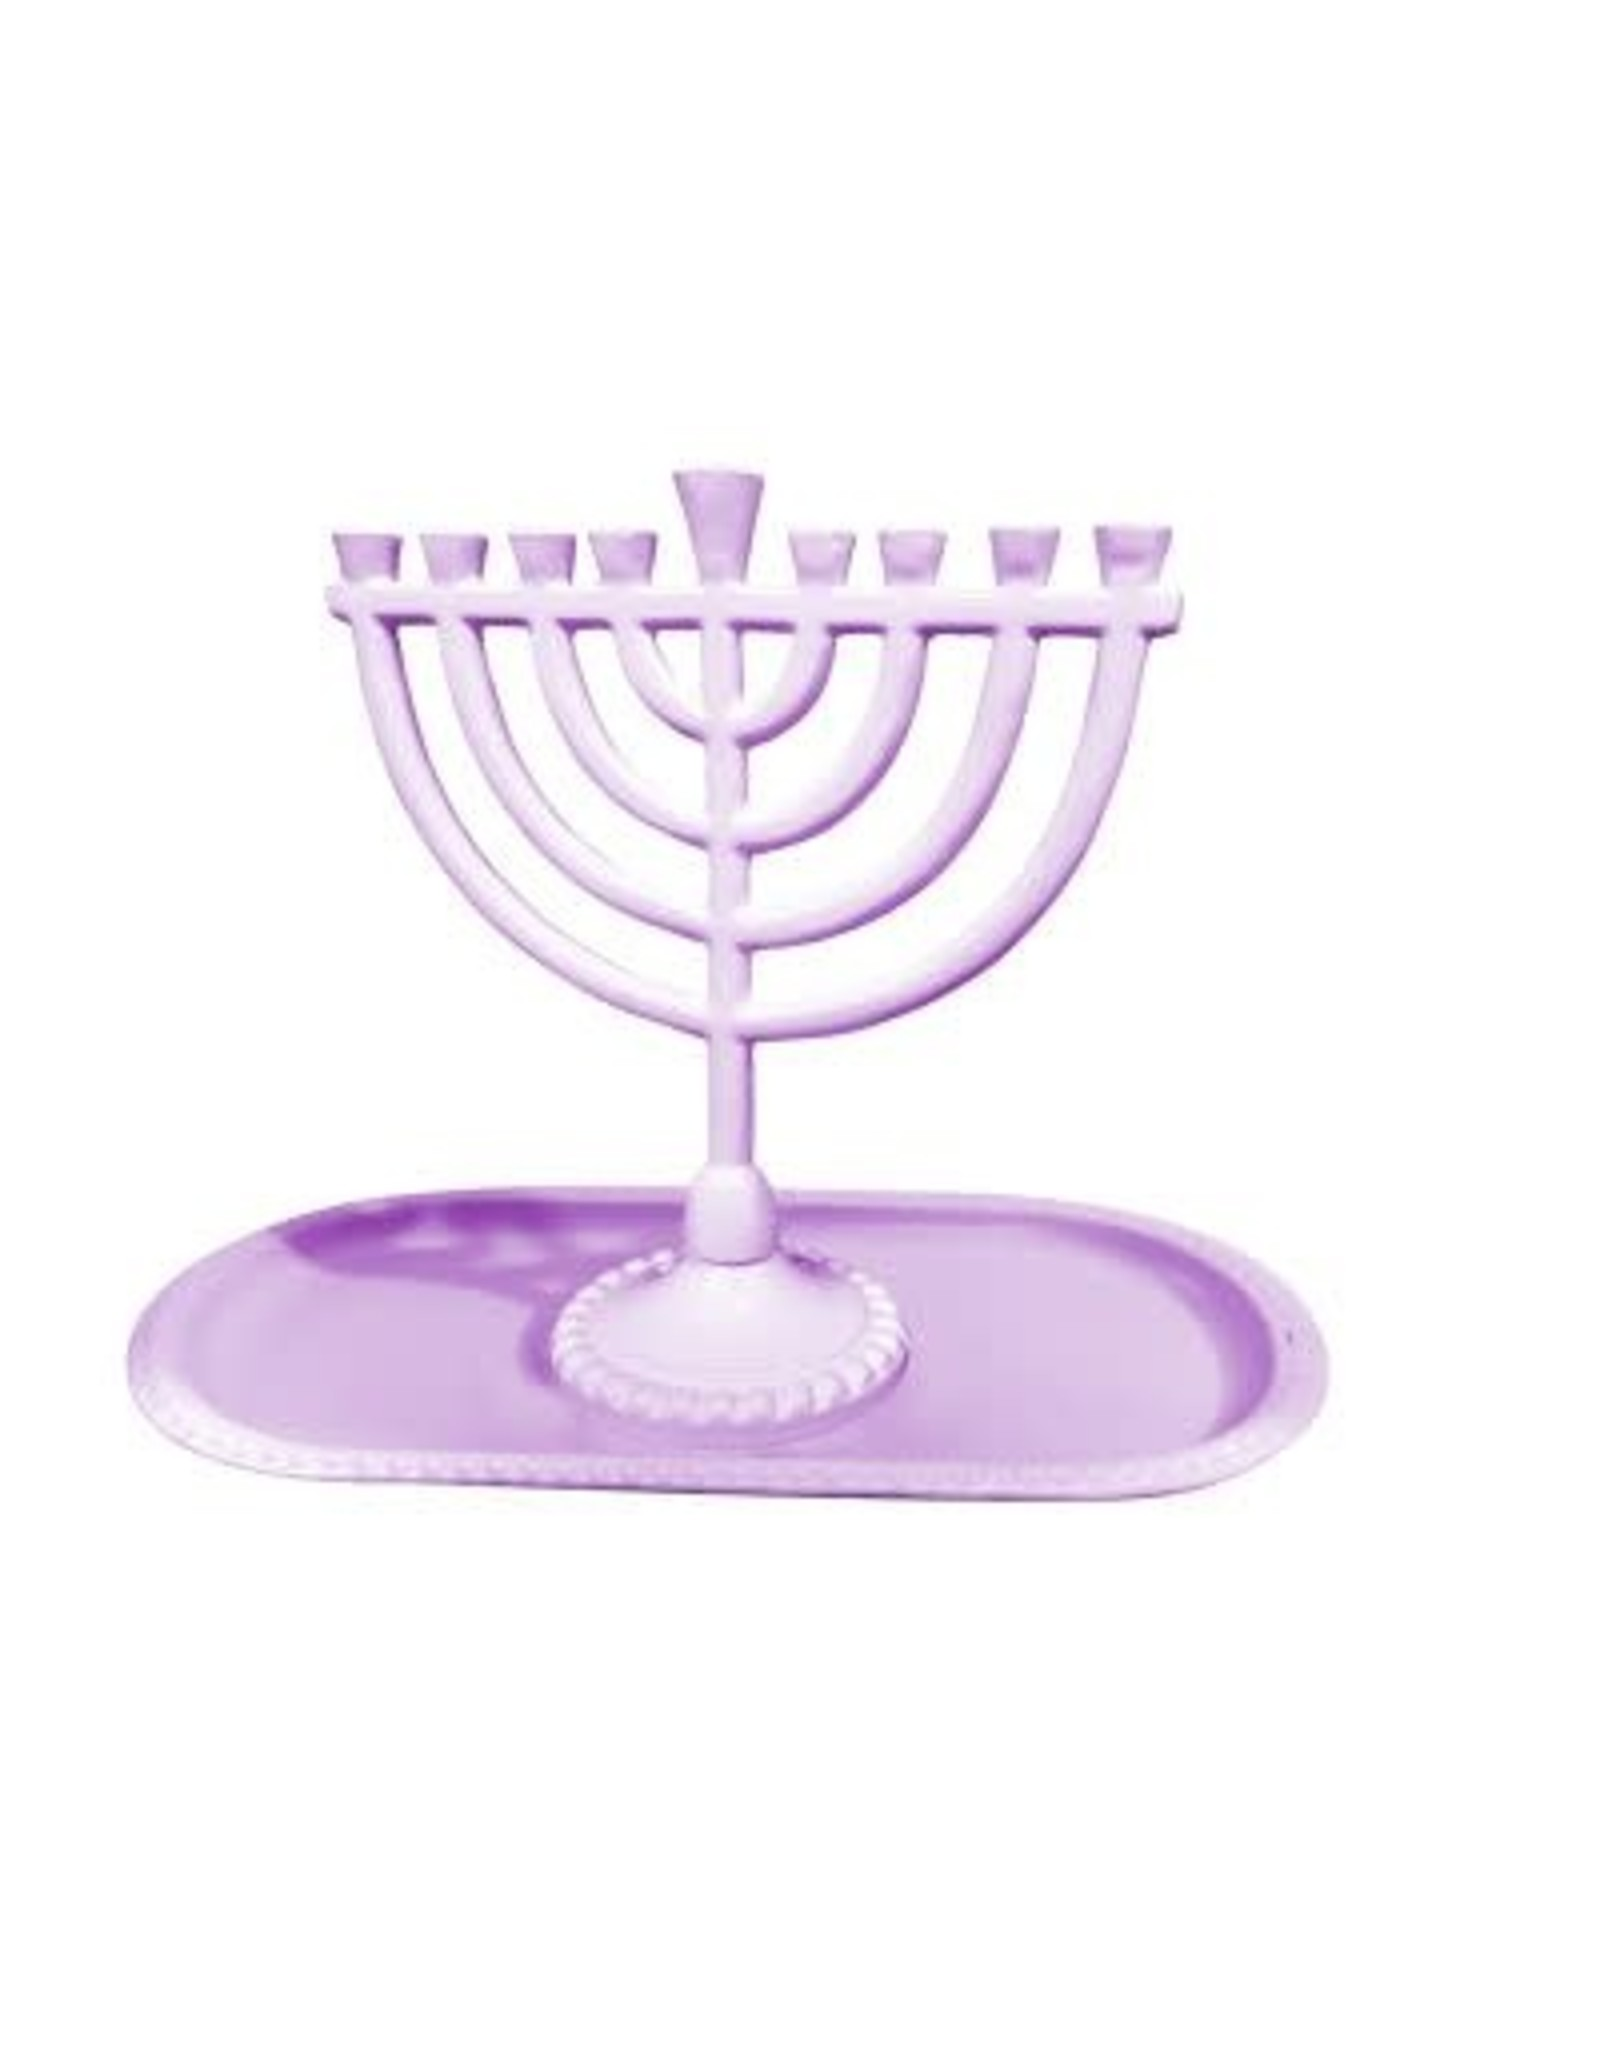 "59058 Mini menroah And Tray Set Menorah 6x6.5"" Round Style Light Purple"